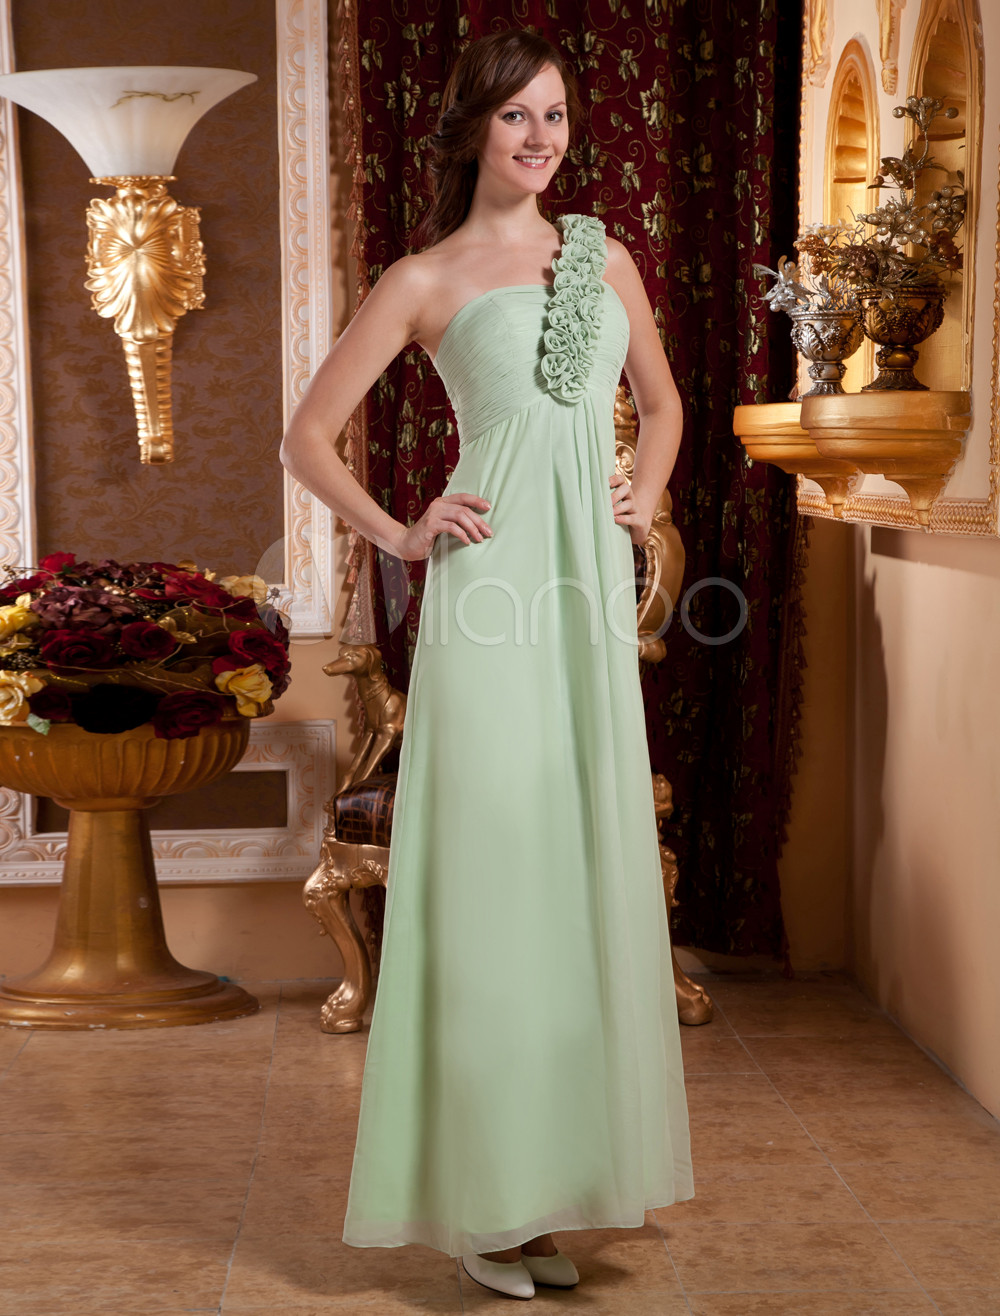 Green Flower One-Shoulder Chiffon Woman's Bridesmaid Dress